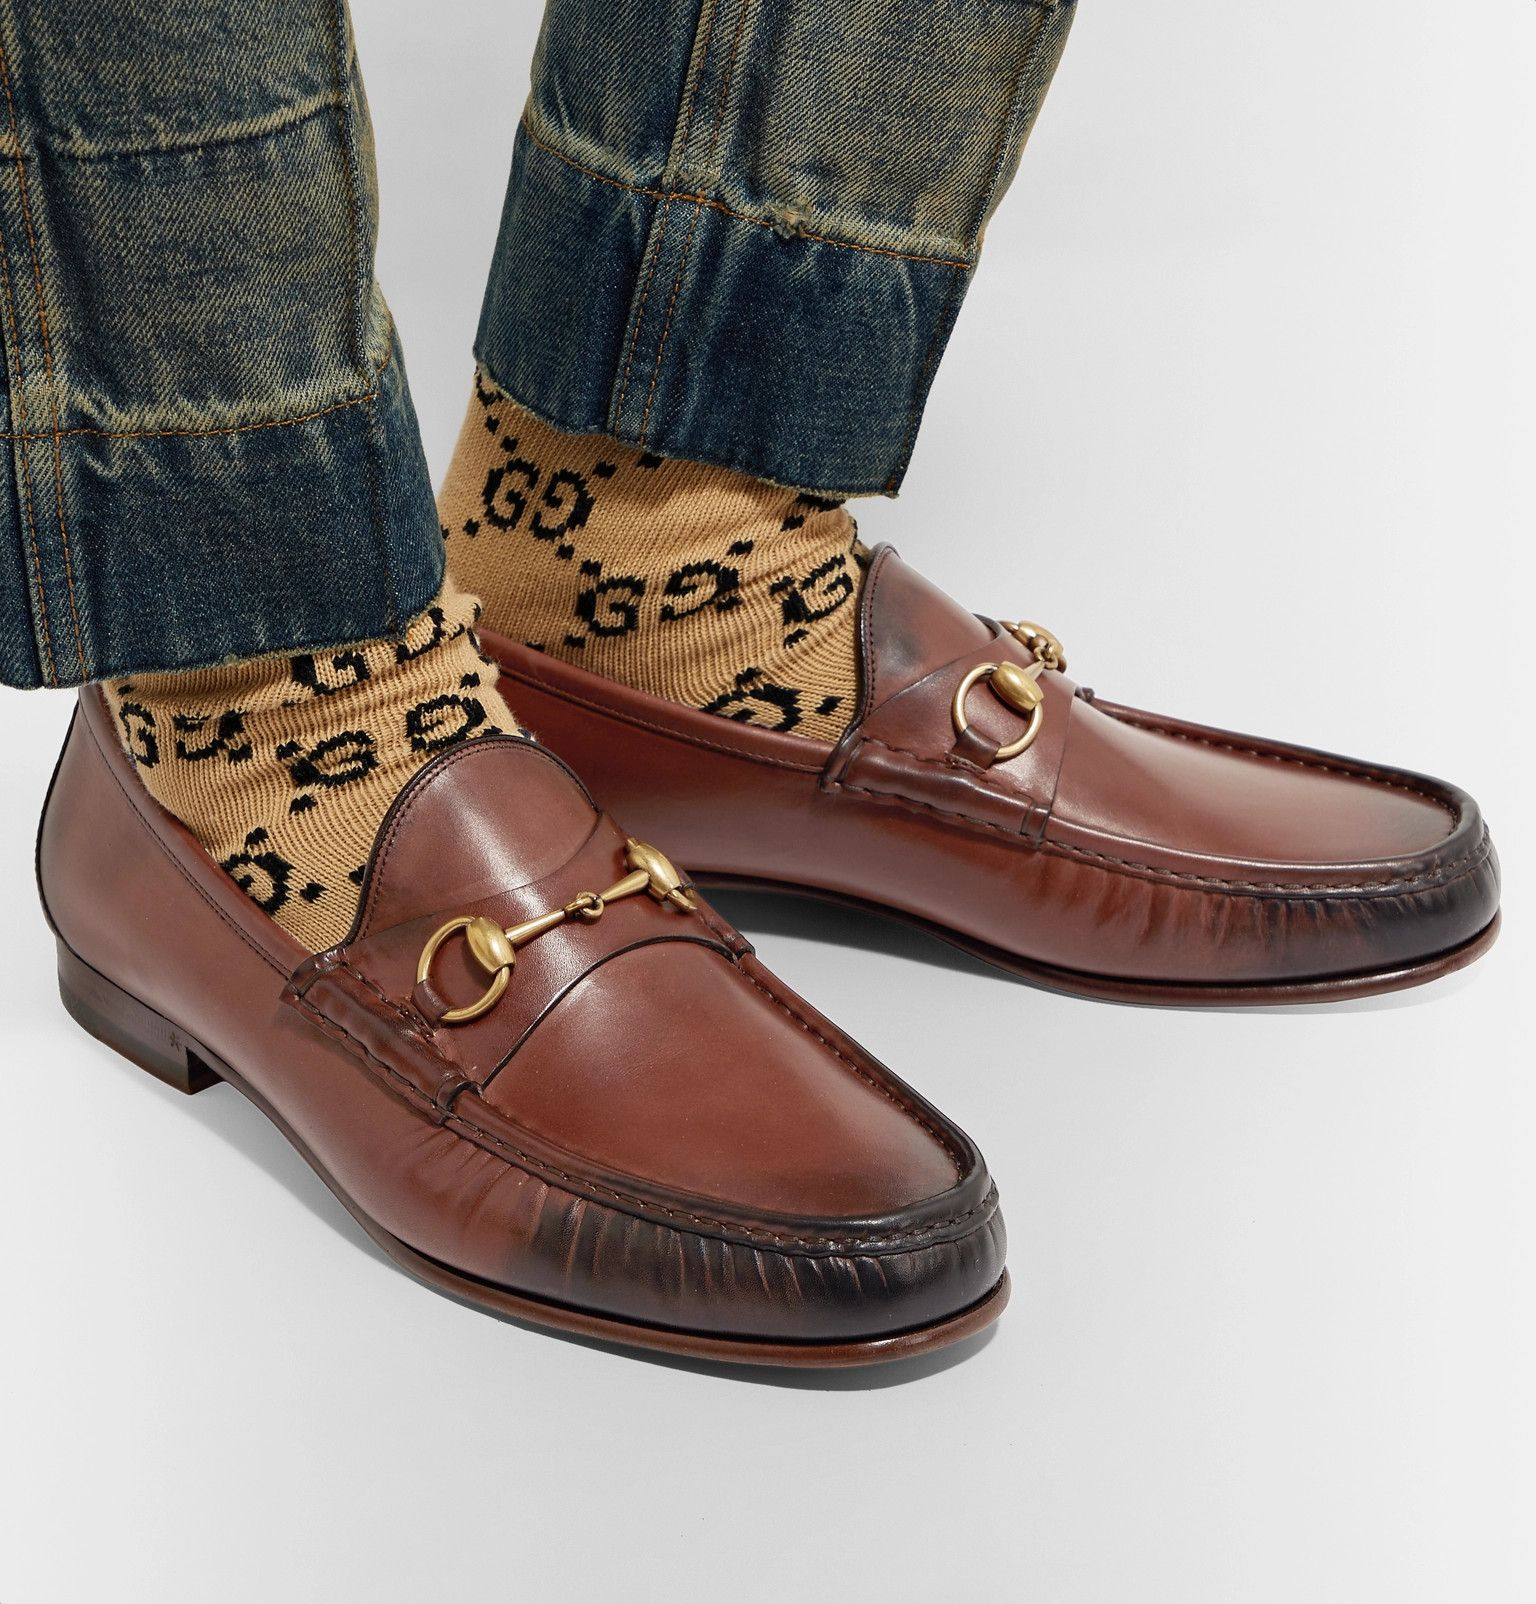 491fd208f Gucci - Roos Horsebit Burnished-Leather Loafers | Fashion SS18 ...